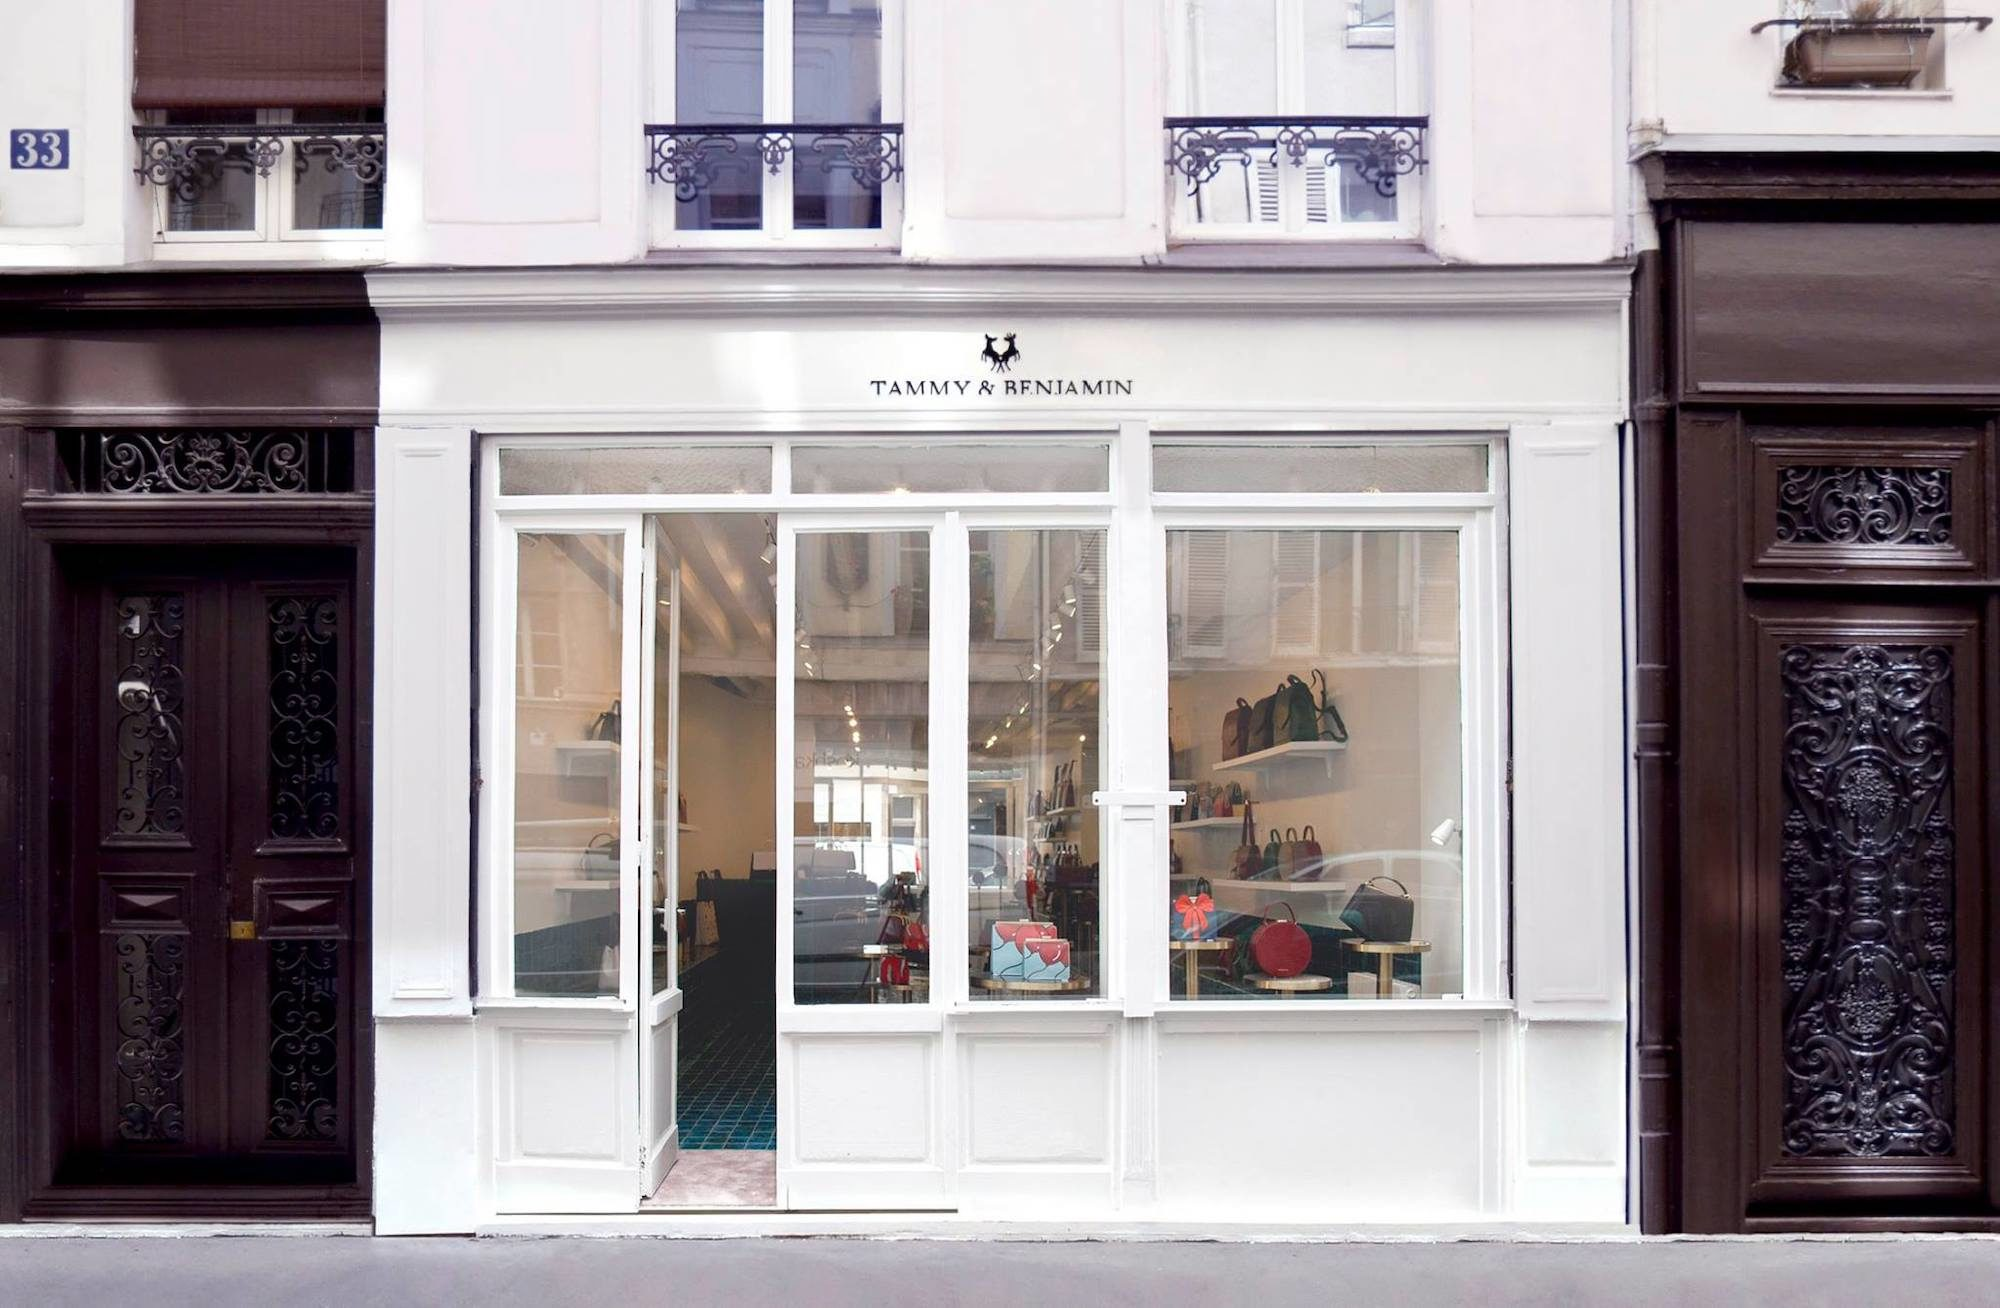 The exterior of the Tammy and Benjamin handbag store in Paris.